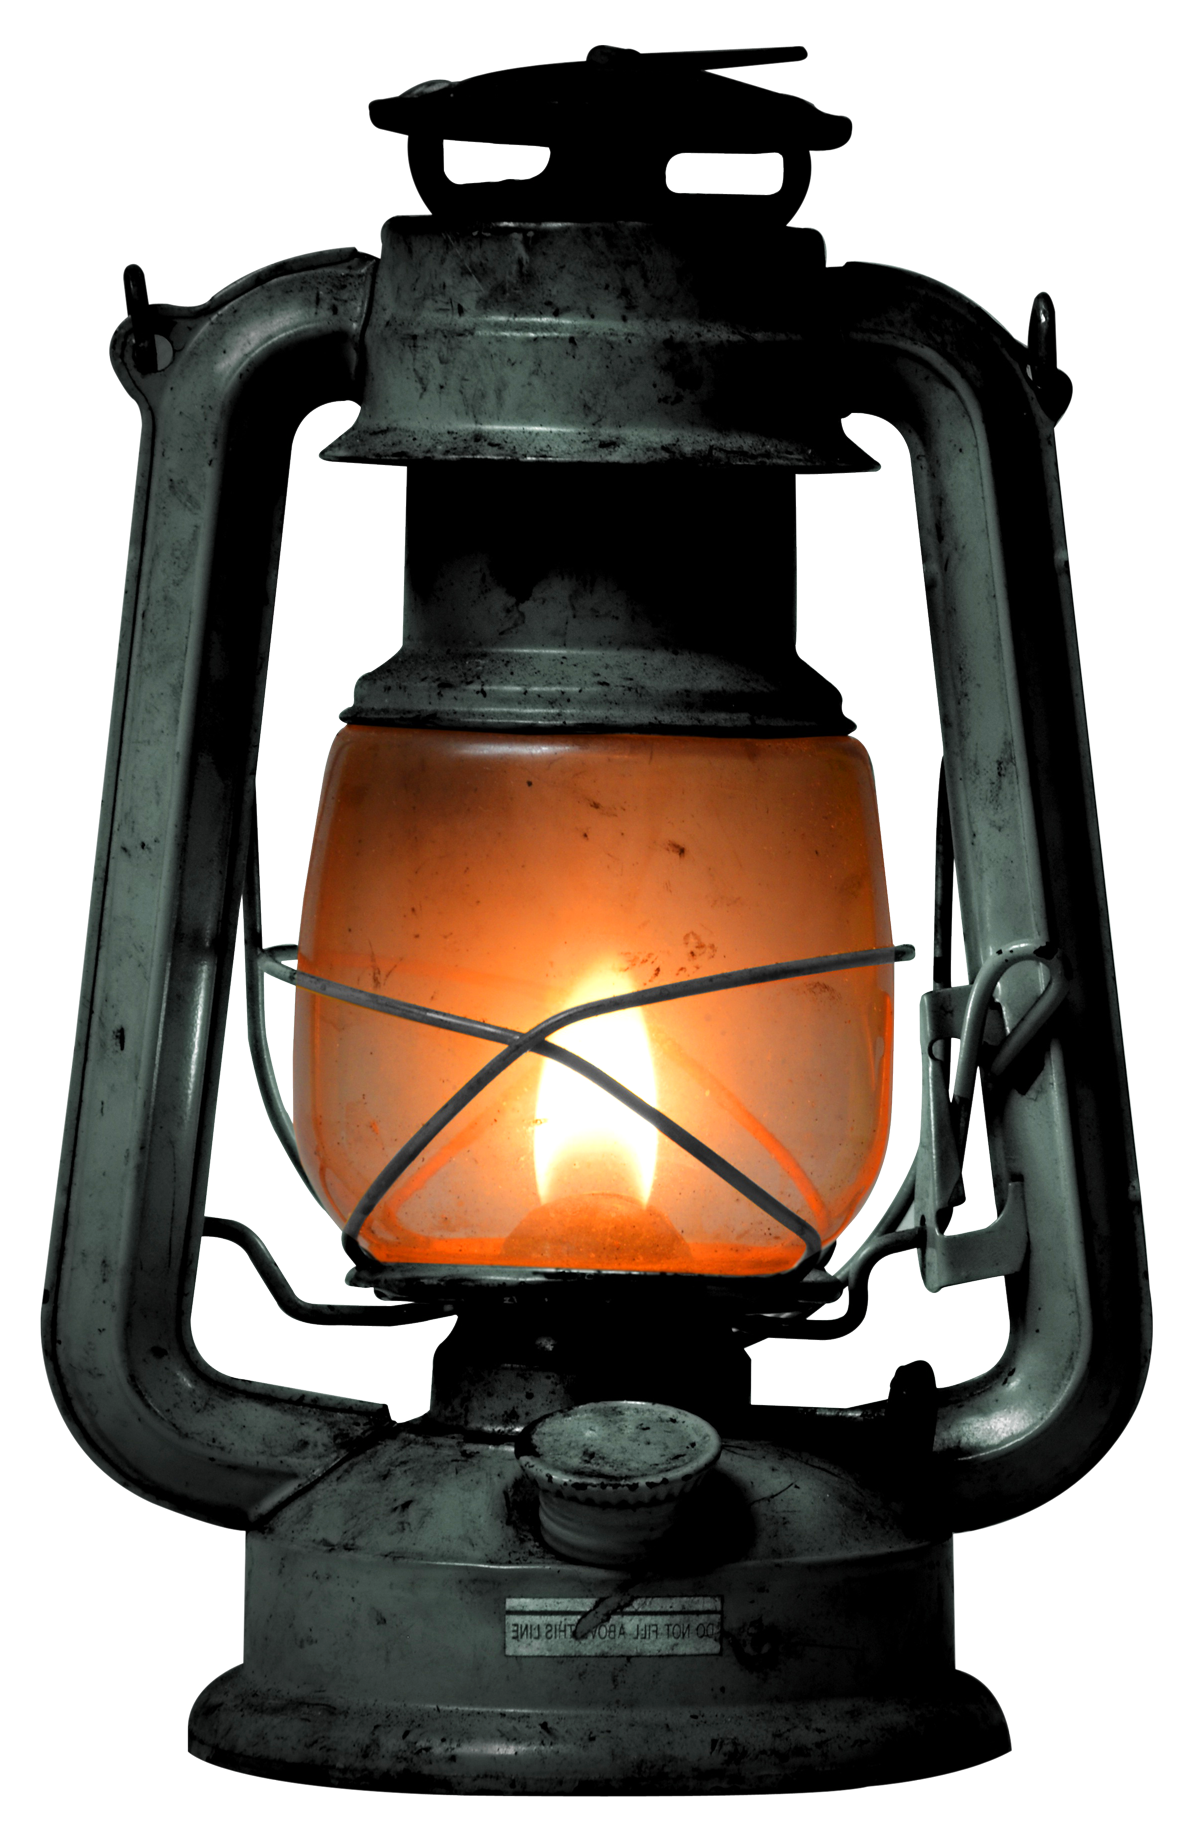 Download hq png image. Lamp clipart paraffin lamp